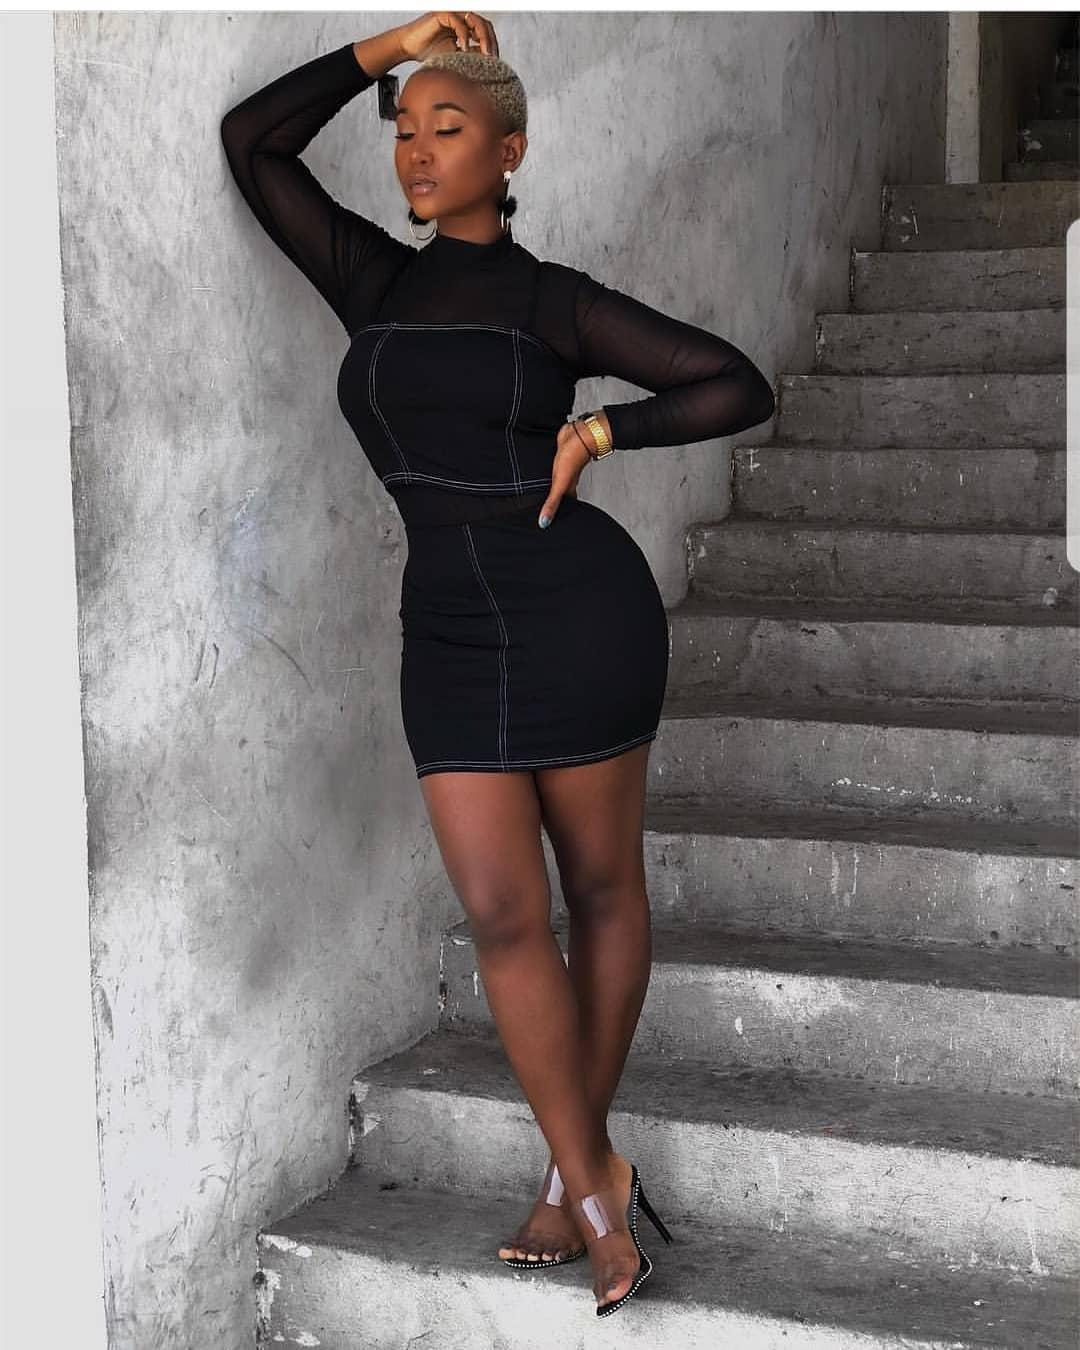 African American Teenage Girls Fashion: All Black Single Piece Outfit For African Girls On Stylevore